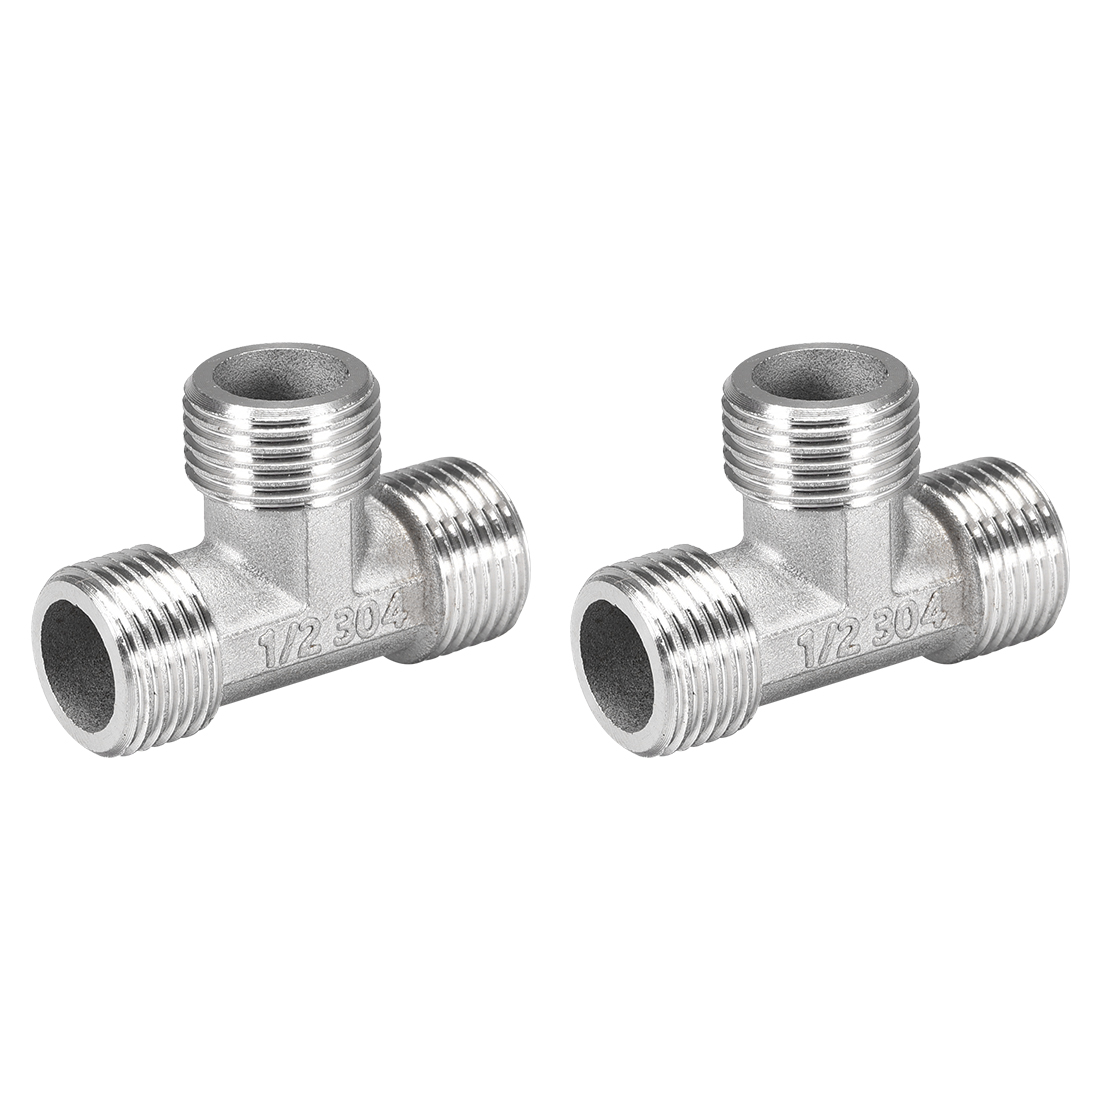 Stainless Steel 304 Cast Pipe Fitting G1/2 Male Thread Tee Shaped Connector 2pcs